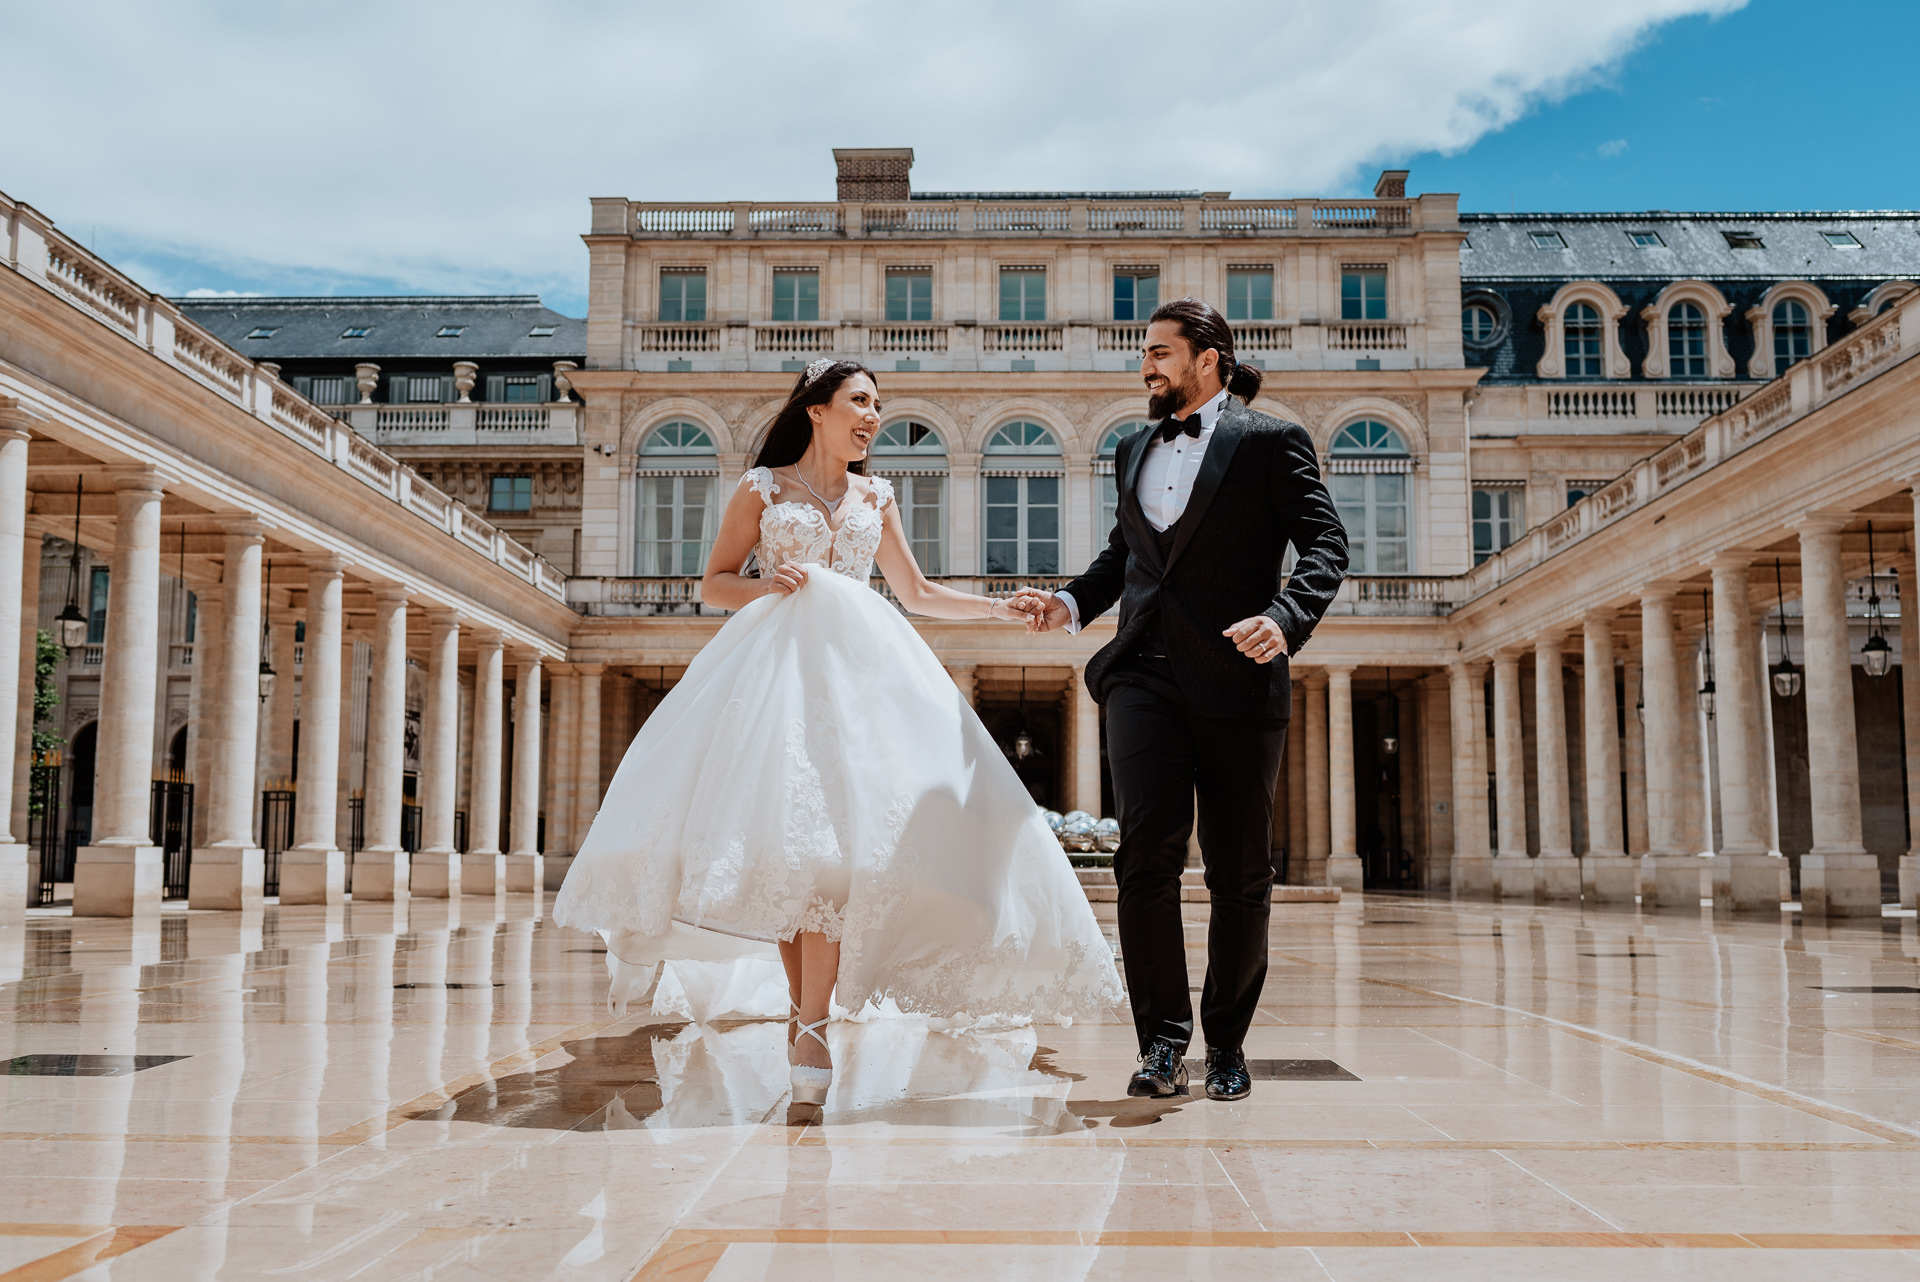 How to get married in PAris